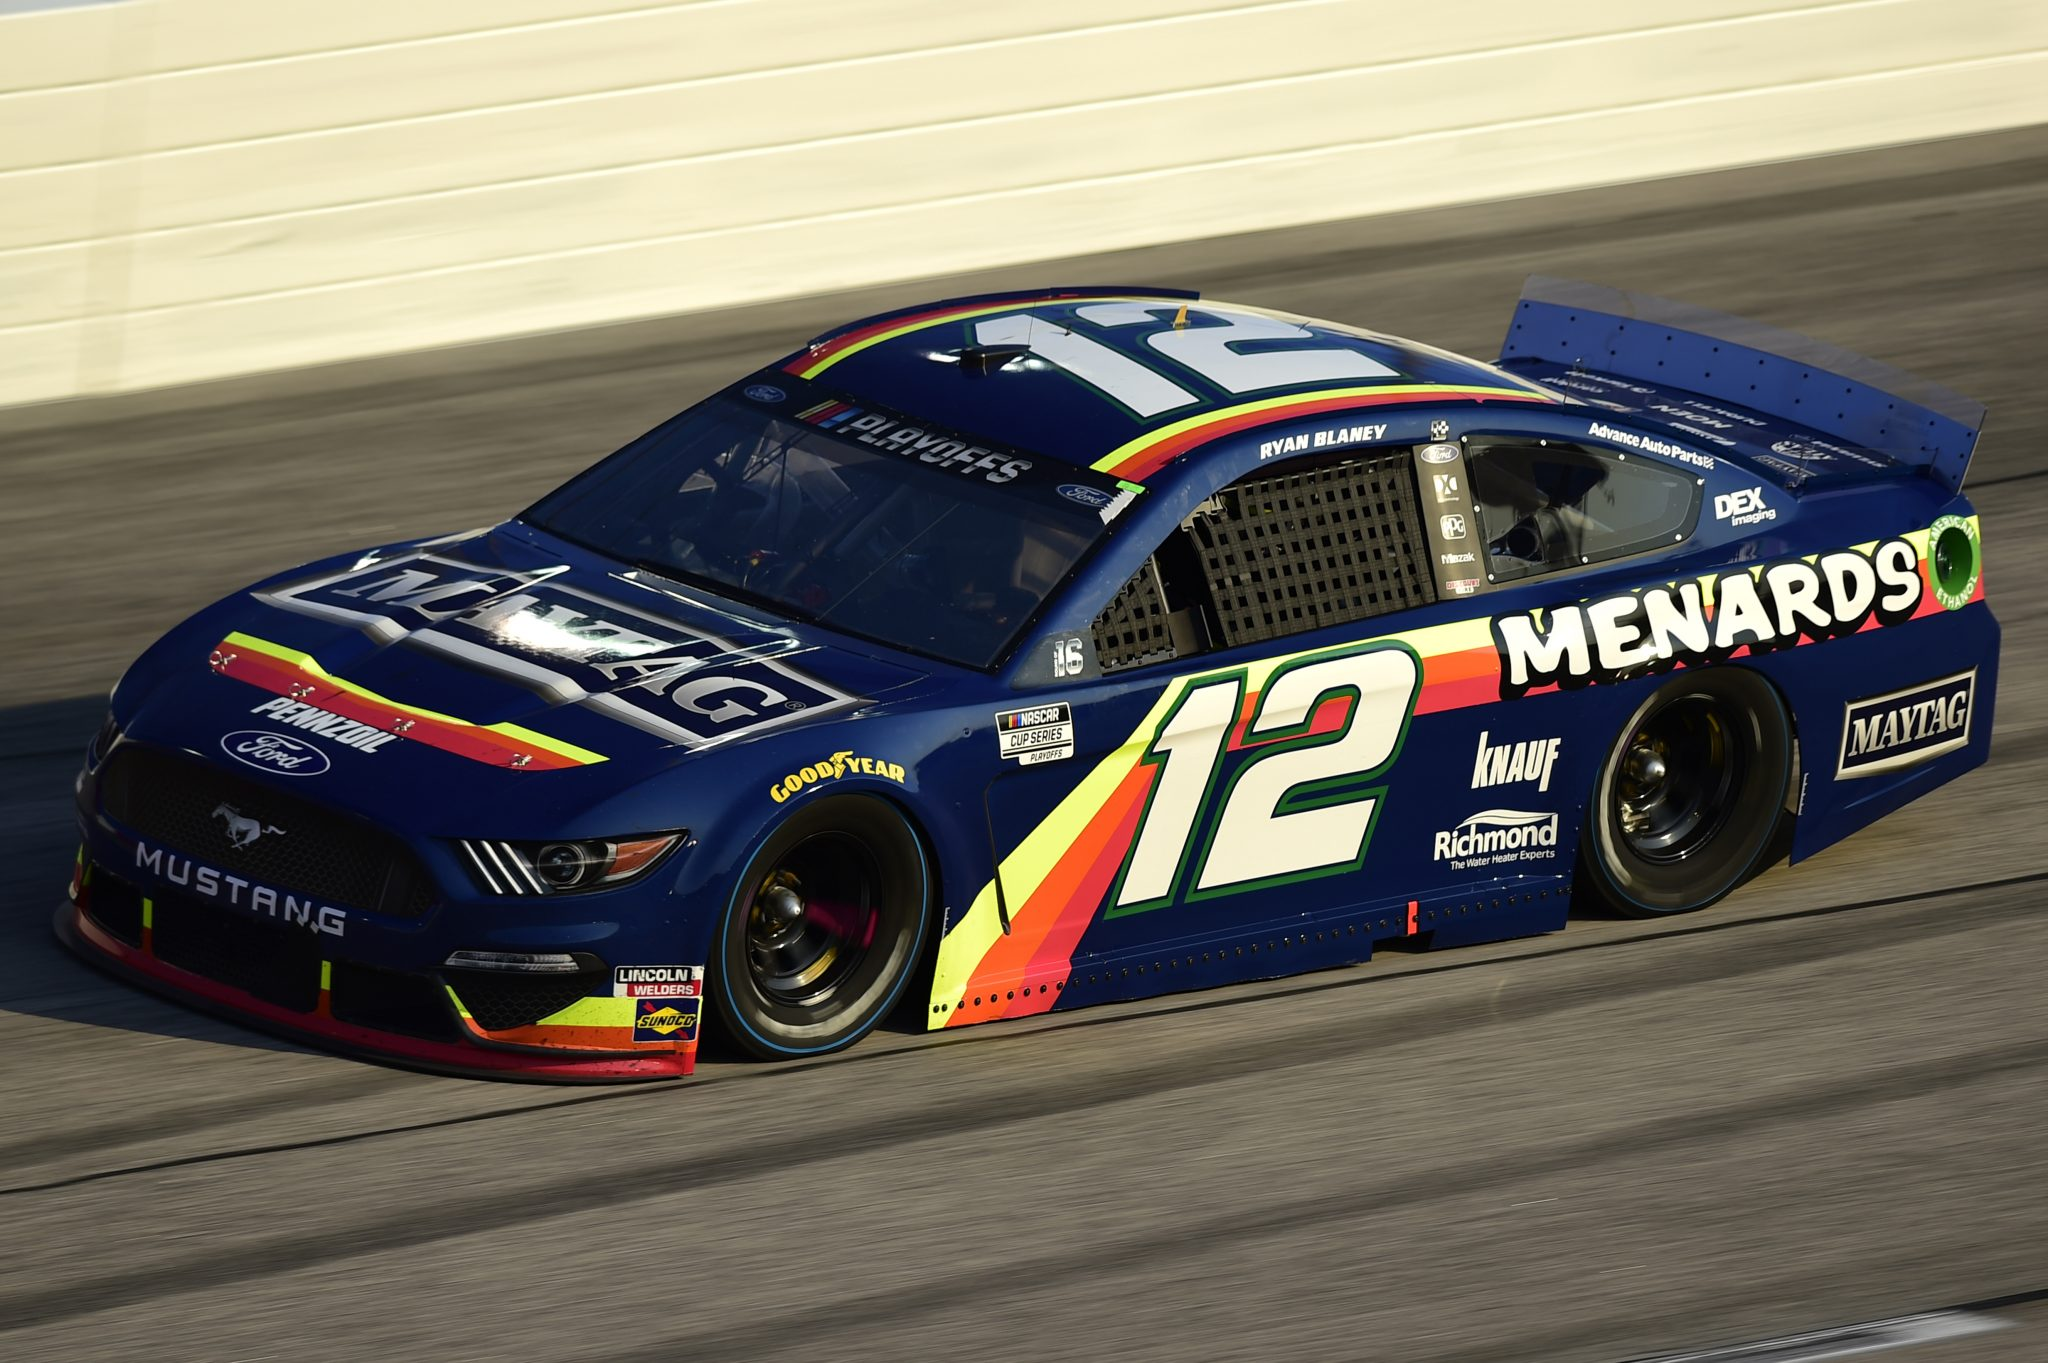 DARLINGTON, SOUTH CAROLINA - SEPTEMBER 06: Ryan Blaney, driver of the #12 Menards/Maytag Ford, drives during the NASCAR Cup Series Cook Out Southern 500 at Darlington Raceway on September 06, 2020 in Darlington, South Carolina. (Photo by Jared C. Tilton/Getty Images) | Getty Images